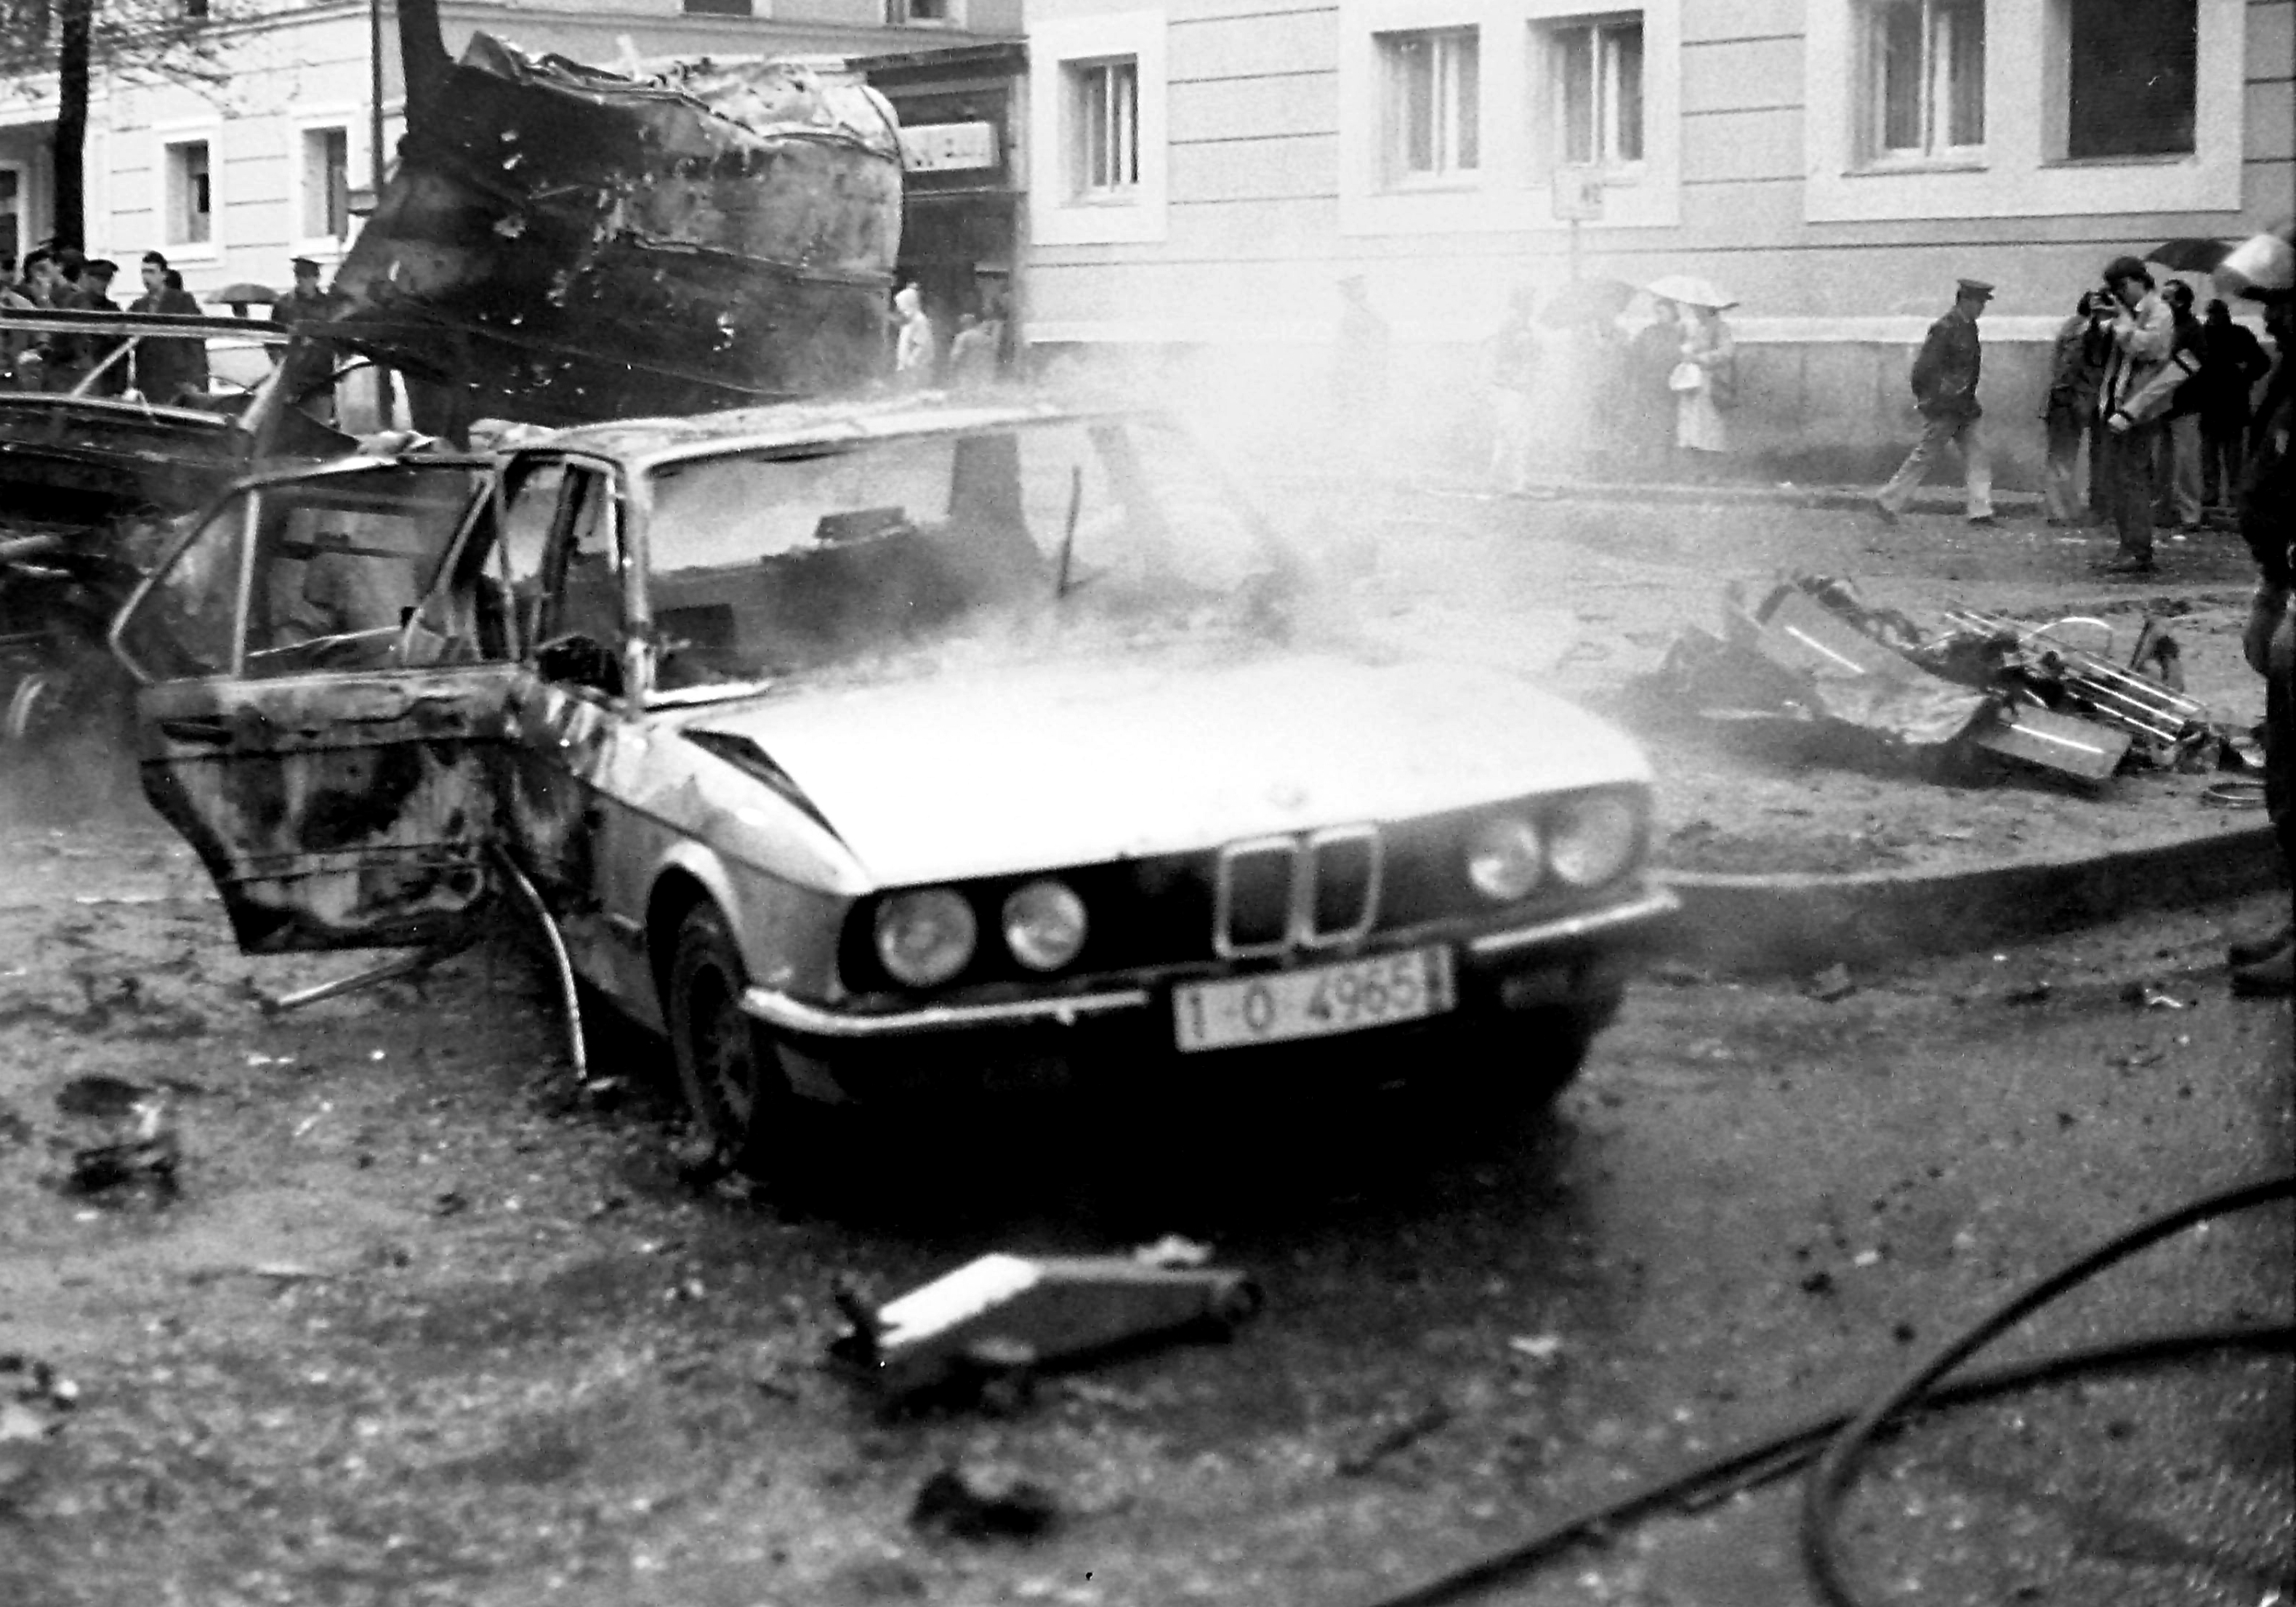 26 Apr 1986, Madrid, Spain --- Madrid, Spain. 26th April 1986 -- A car bomb blew up near a police minivan, killing 5. The explosion shattered windows at surrounding buildings and ripped a hole in the facade of a nearby hospital, witnesses said. -- At dawn of the Apr. 25, 1986 a big explosion killed five Guardia Civiles in one of the main streets of Spains capital. The bomb, apparently set off by remote control, exploded as a jeep carrying the guards drove near the Italian Embassy at 7:22 a.M. --- Image by © jhinojosacobacho/Demotix/Corbis